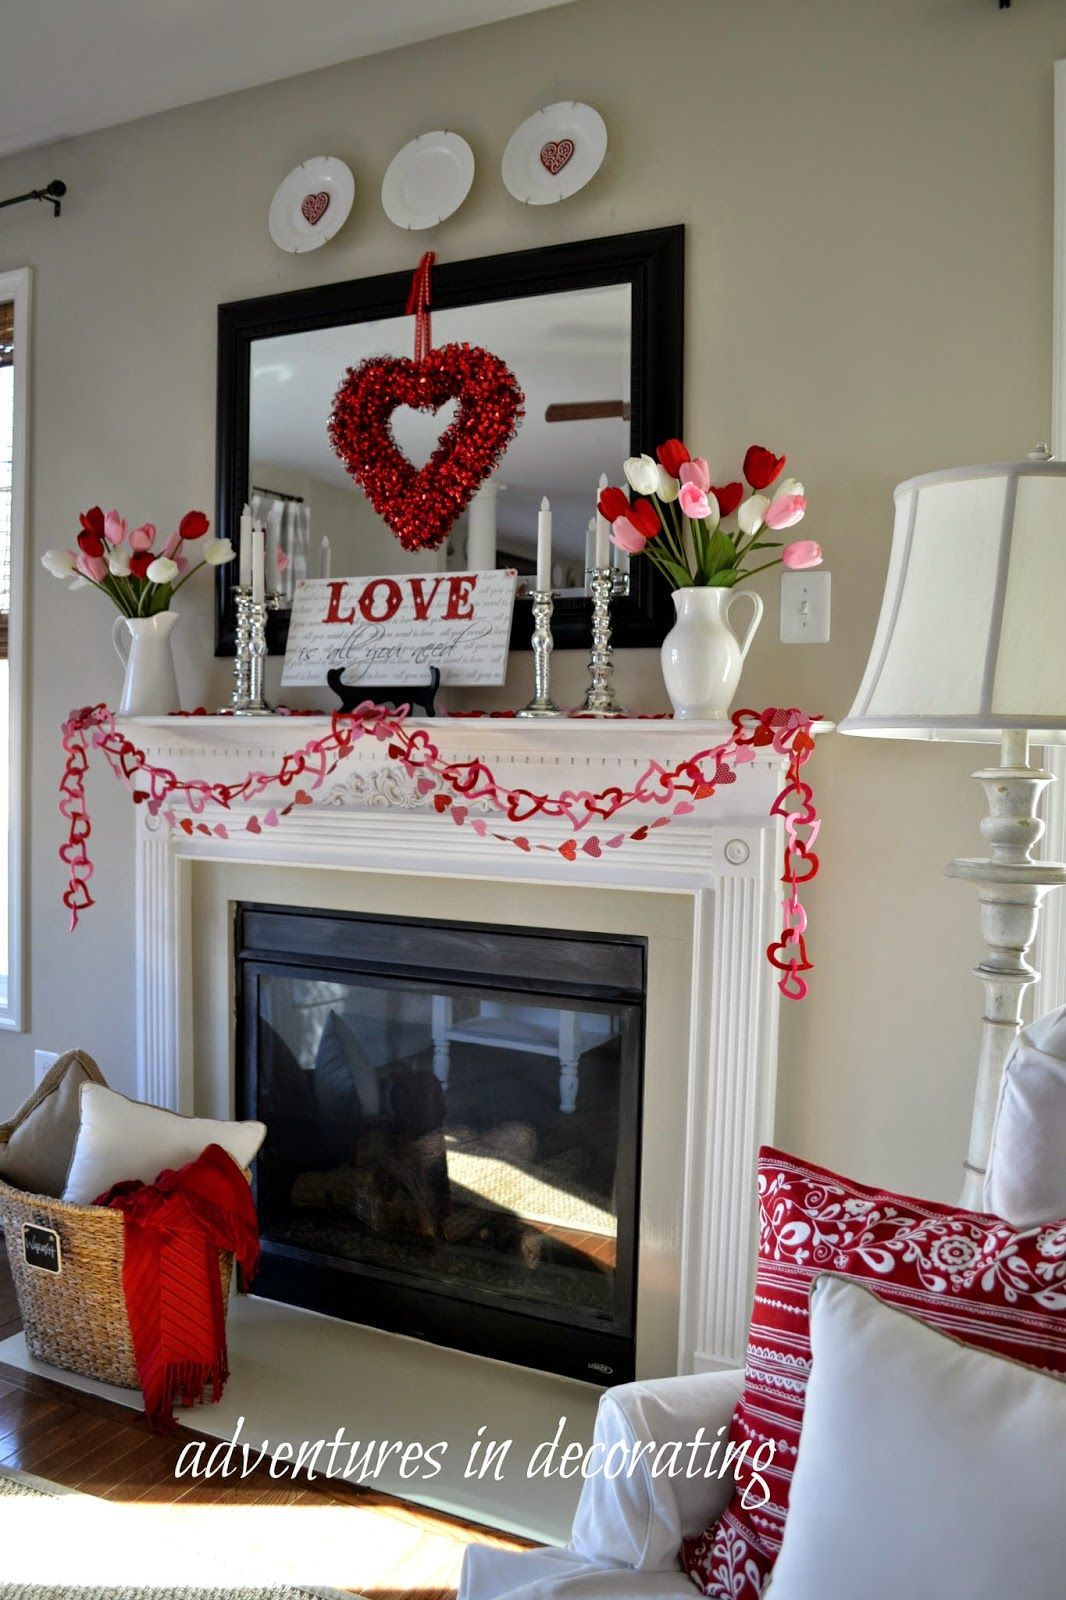 Adventures In Decorating Our 2015 Fall Kitchen: Adventures In Decorating: 2015 Valentine Mantel/Heart And